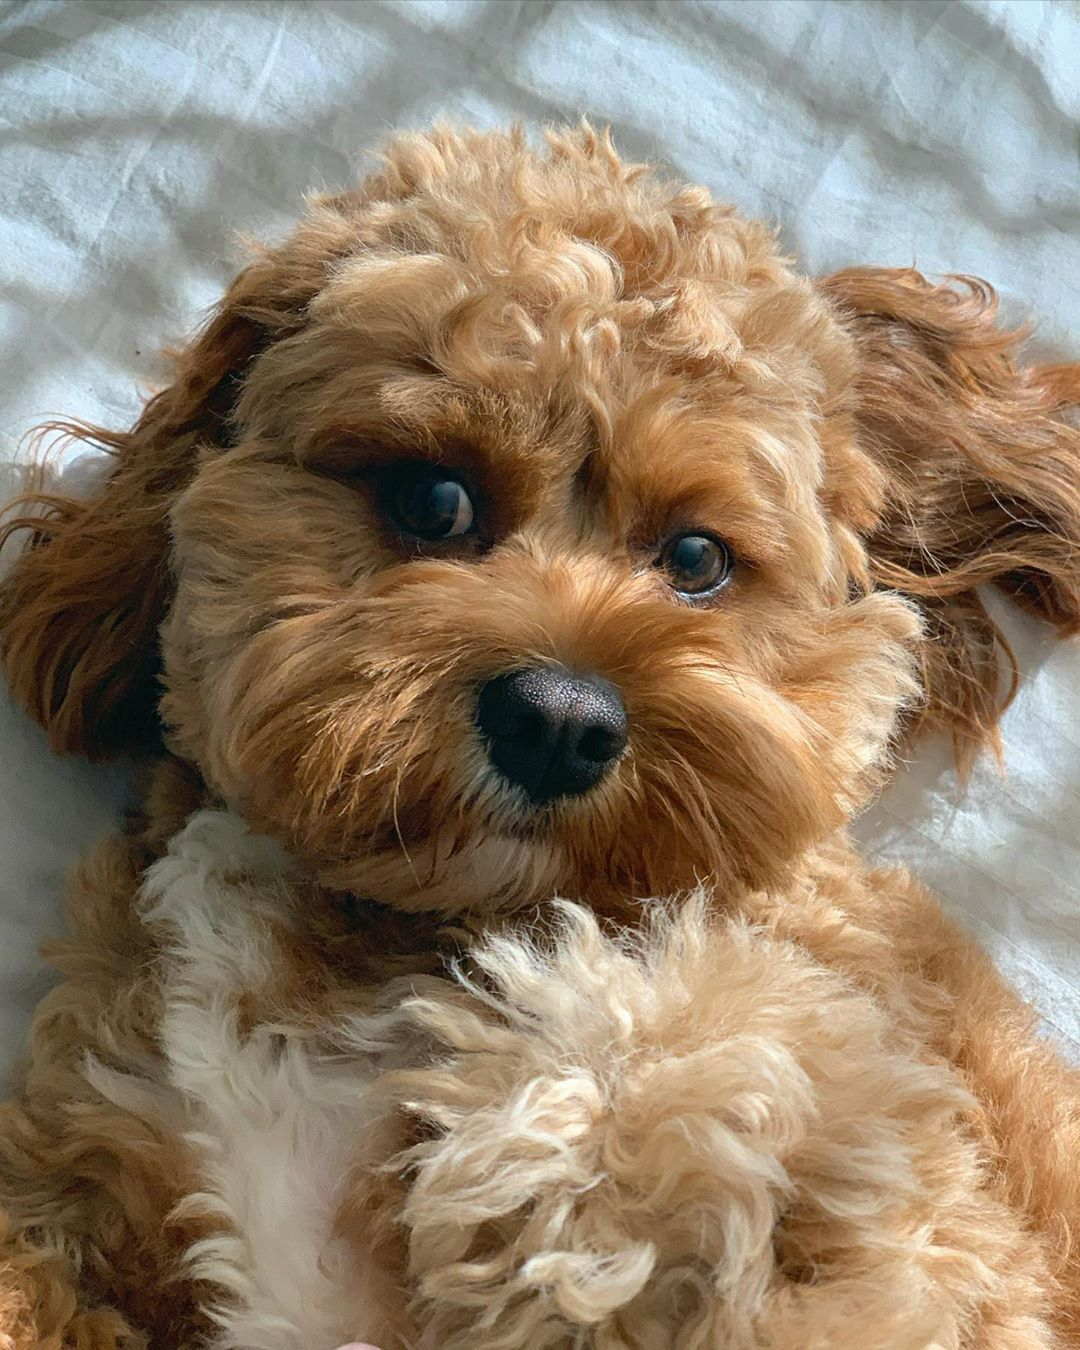 Brady The Cavapoo On Instagram Will You Rub My Belly Please Cavapoo Cavoodle Doodle Dog Puppy Cavapoopupp In 2020 Cavapoo Cavapoo Puppies Poodle Puppy